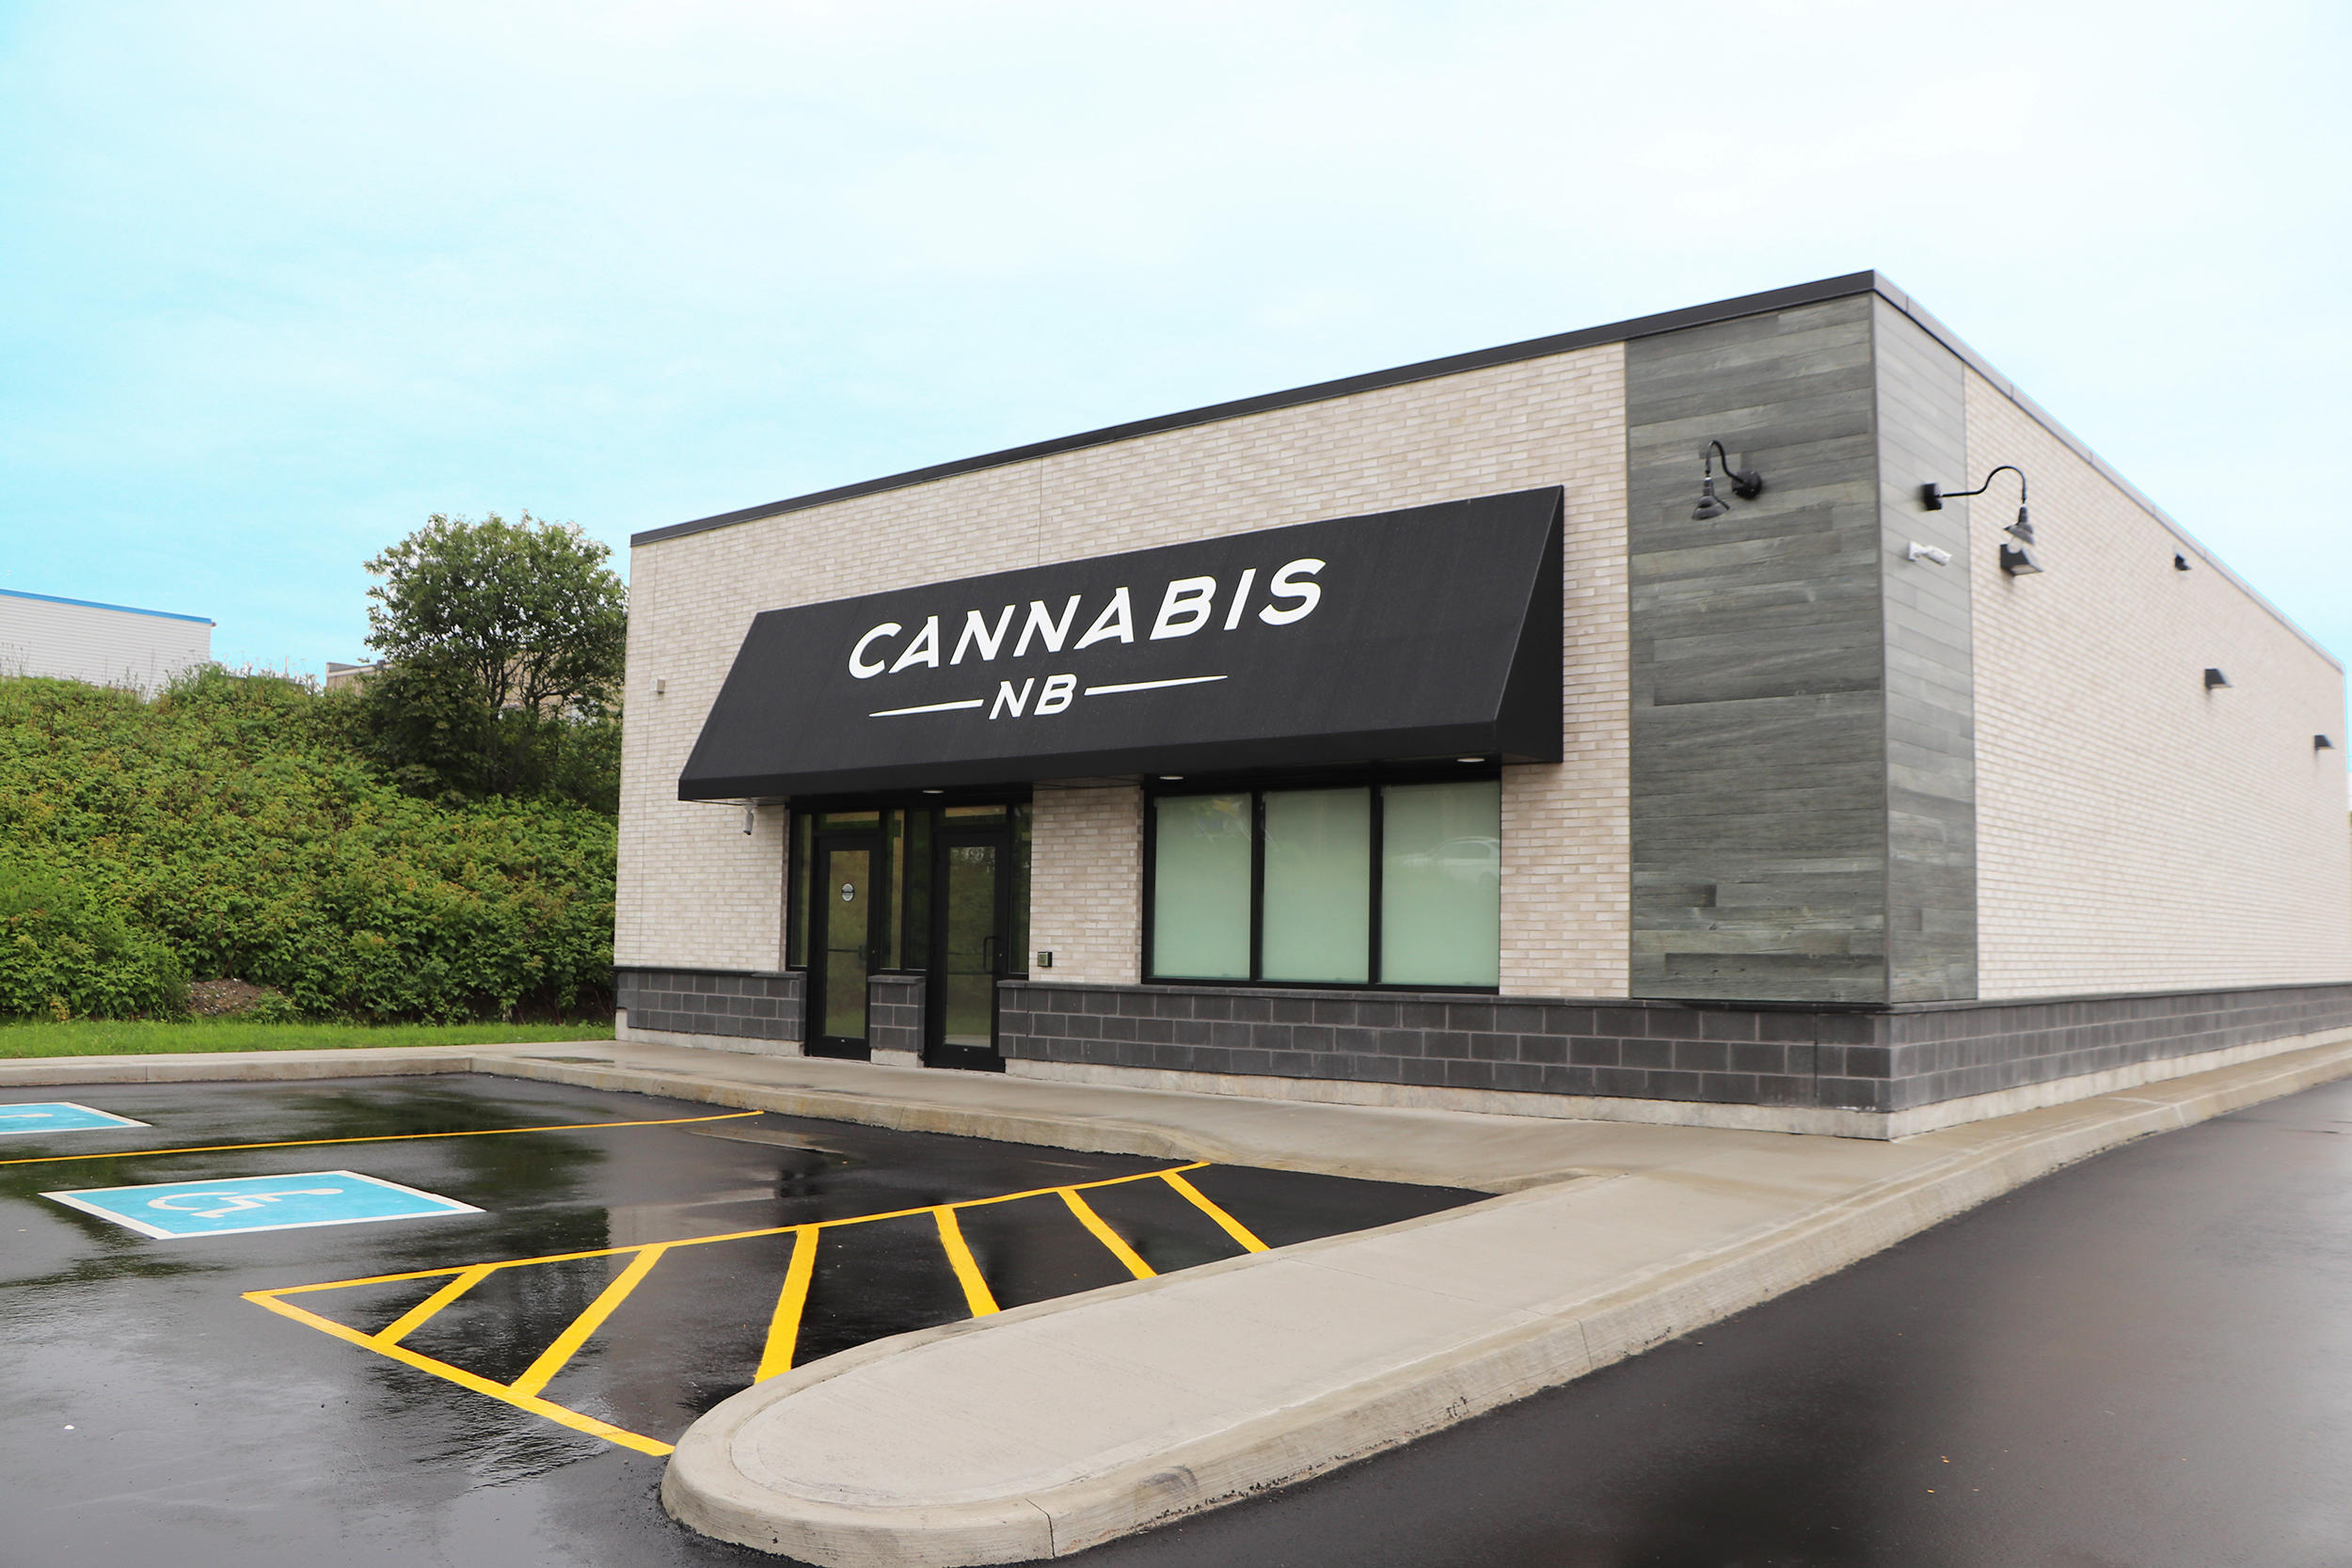 Cannabis NB à Rothesay: Cannabis NB Saint John location on Lansdowne Ave